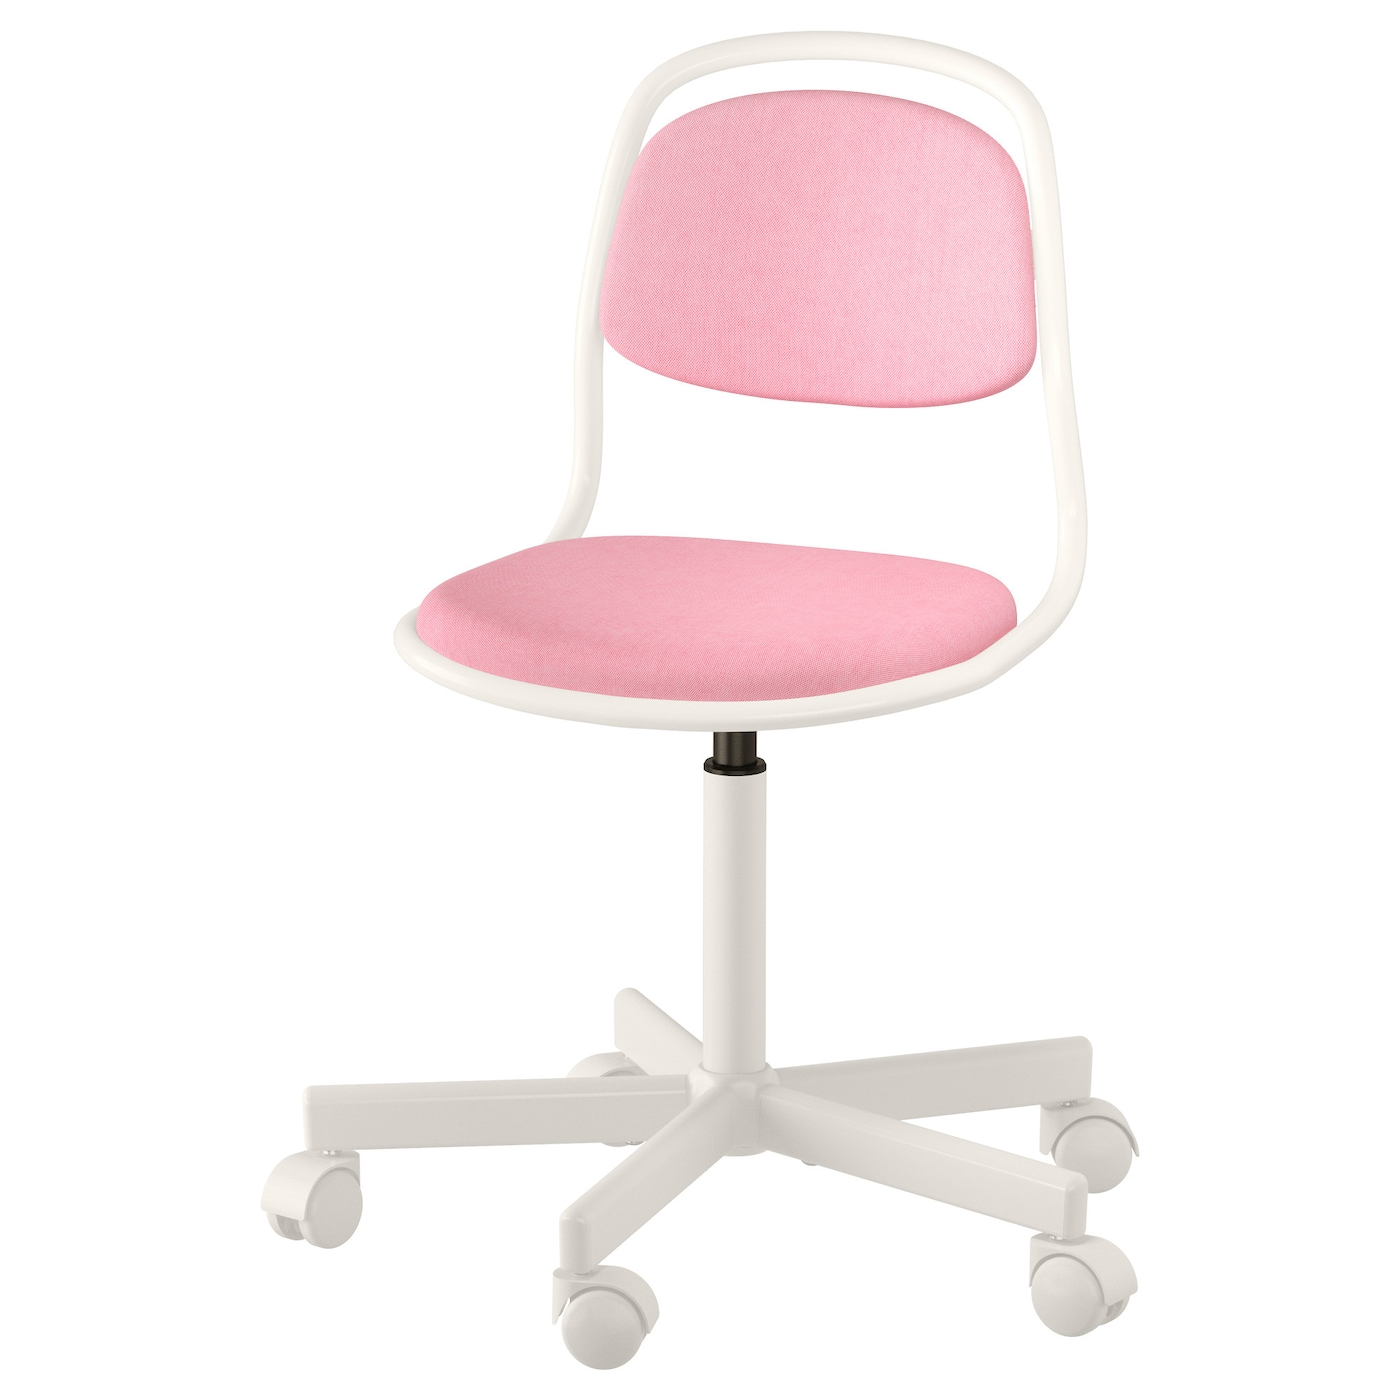 "–RFJ""LL Children s desk chair White vissle pink IKEA"